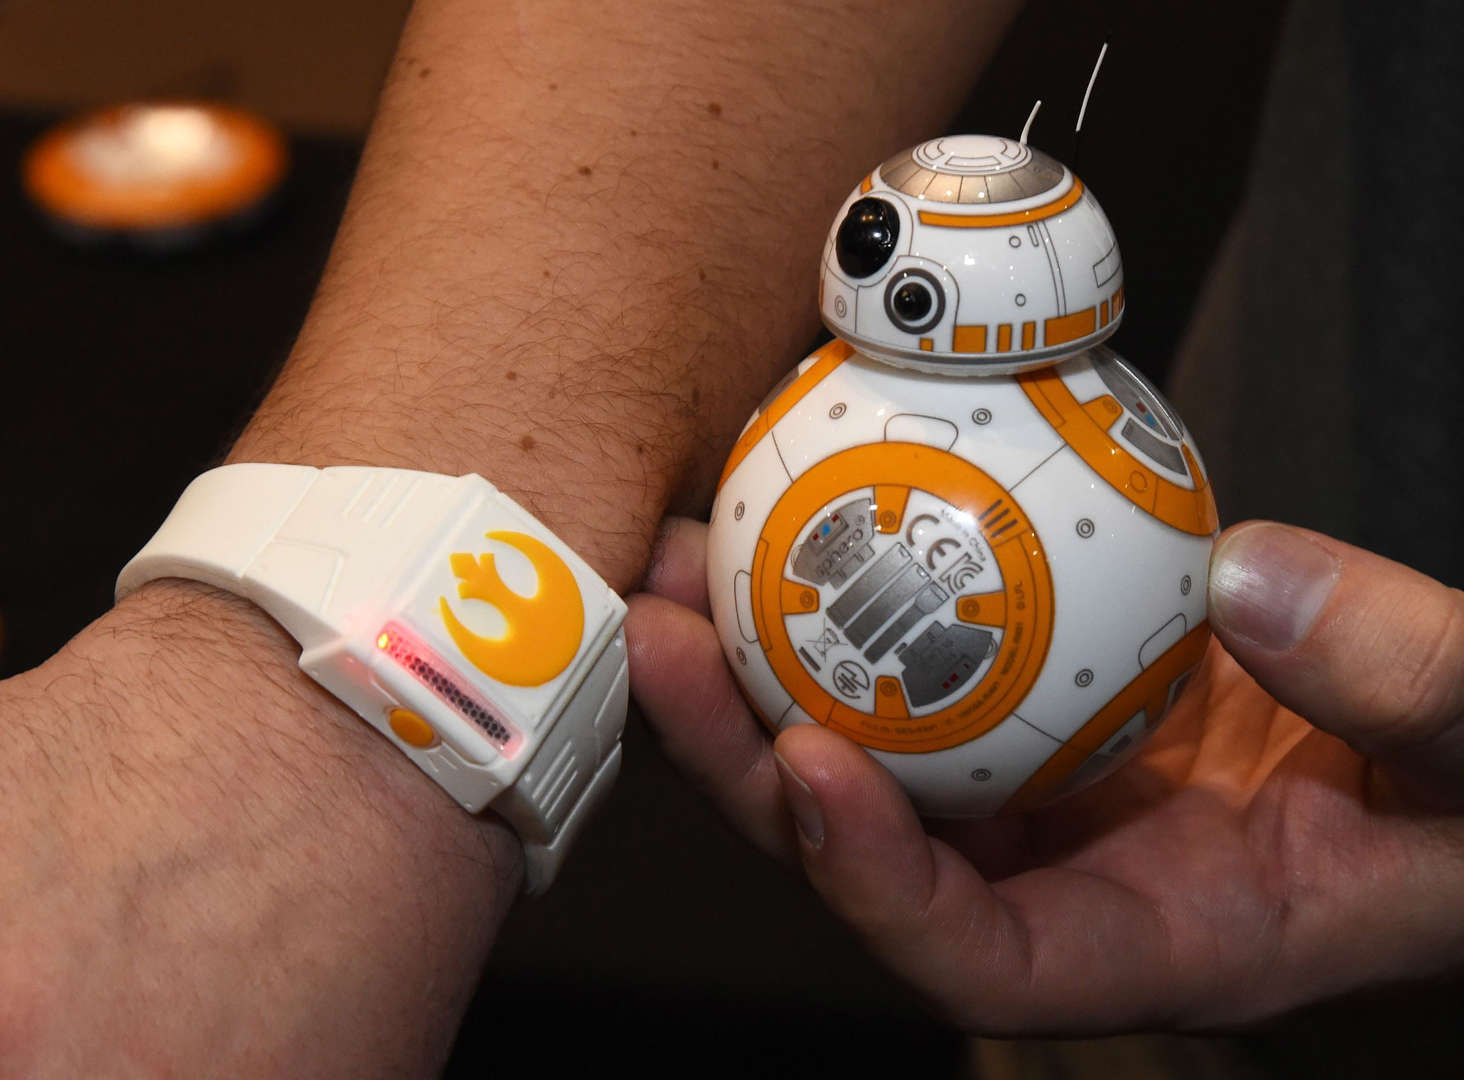 LAS VEGAS, NV - JANUARY 04: Sphero's BB-8 technical prototype with Force Band is displayed during a press event for CES 2016 at the Mandalay Bay Convention Center on January 4, 2016 in Las Vegas, Nevada. Sphero partnered with Lucasfilm to build the USD 150, app-enabled toy from the droid character in the film 'Star Wars: The Force Awakens.' It can be controlled using Bluetooth by a smartphone or the Force Band and features gesture-based technology enabling users to control it with Jedi-like movements. CES, the world's largest annual consumer technology trade show, runs from January 6-9 and is expected to feature 3,600 exhibitors showing off their latest products and services to more than 150,000 attendees. (Photo by Ethan Miller/Getty Images)